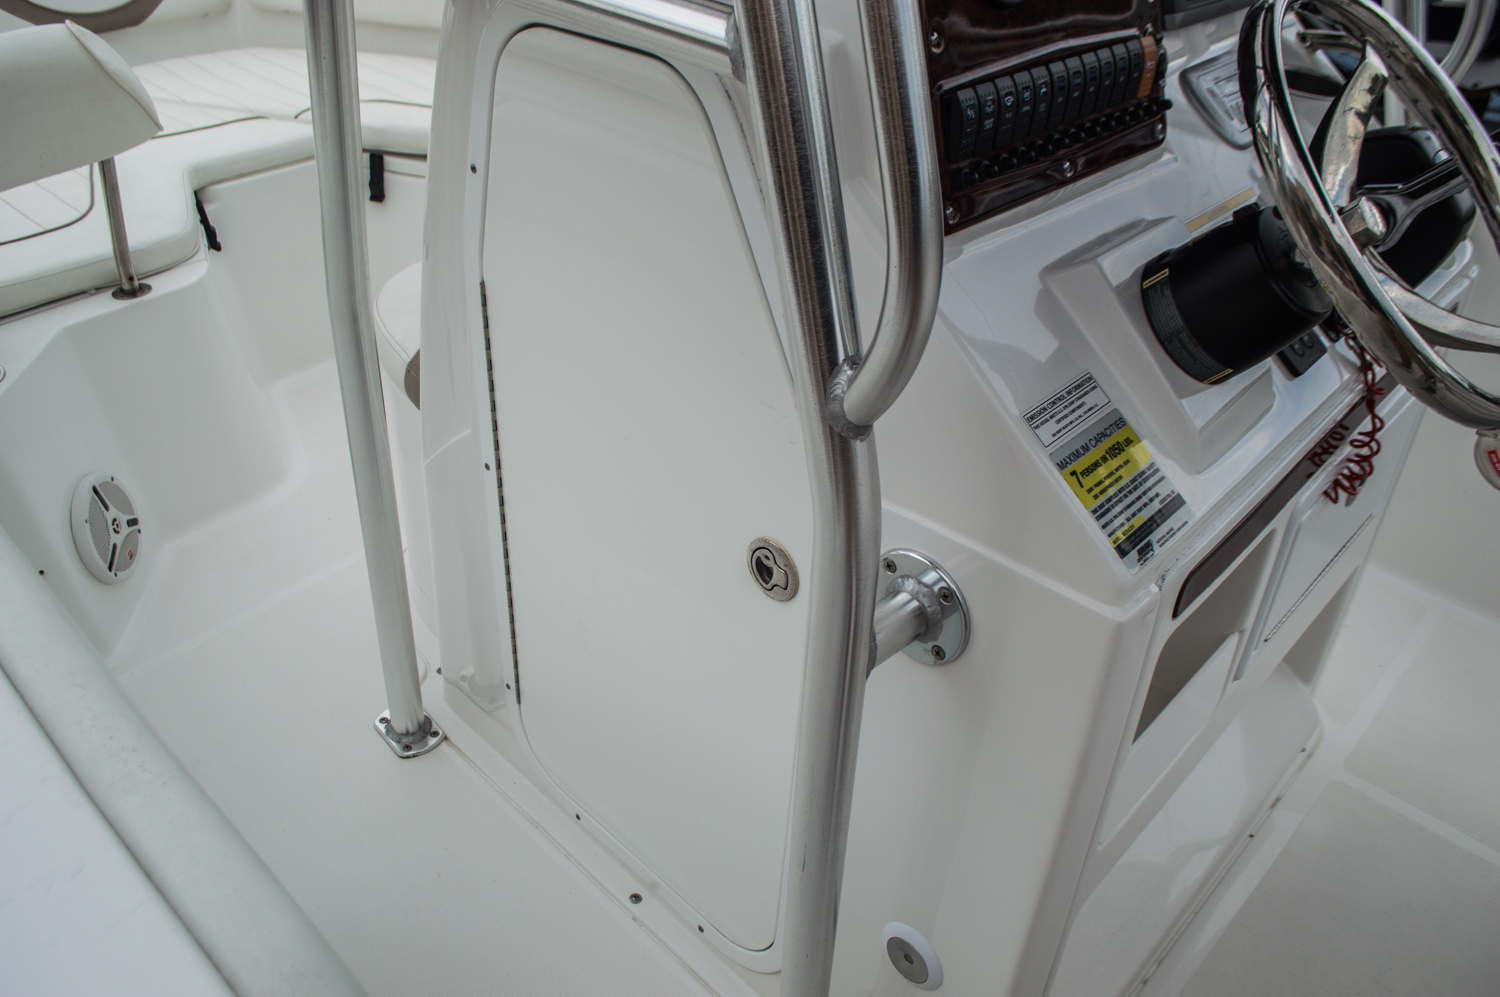 Thumbnail 22 for Used 2012 Sea Hunt 211 Ultra boat for sale in West Palm Beach, FL